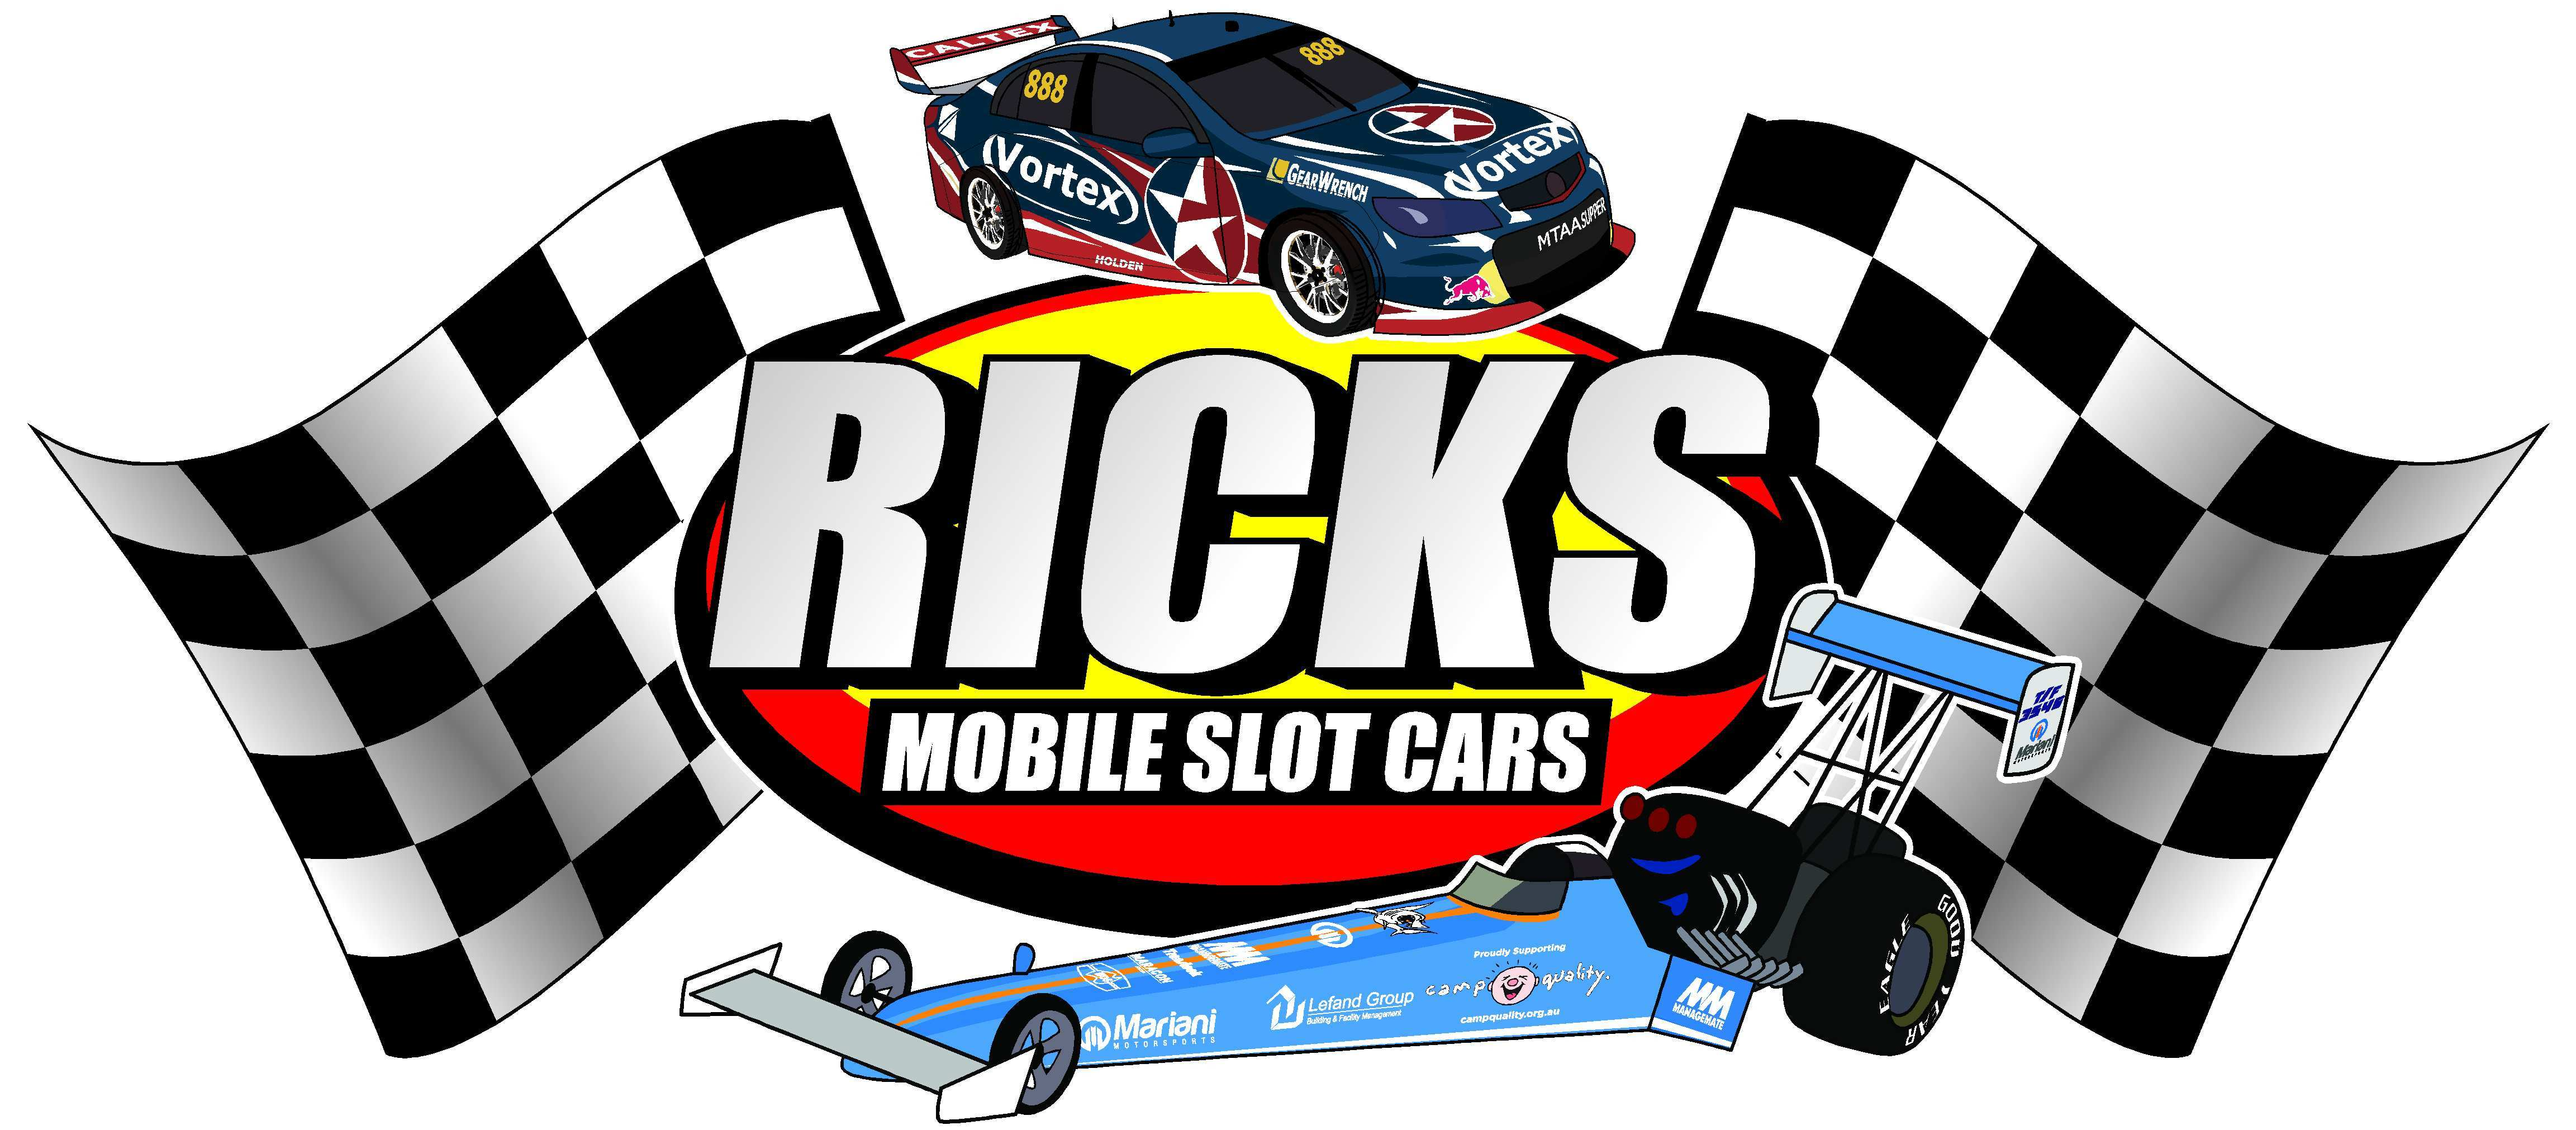 Motorex 2018 Exhibitors Ford Wiper Motor Wiring Diagram Car Tuning Ricks Mobile Slot Cars Family Owned Business That Comes To You For Parties Corporate Events School Fetes And Shows Visit Mobileslotcarscom